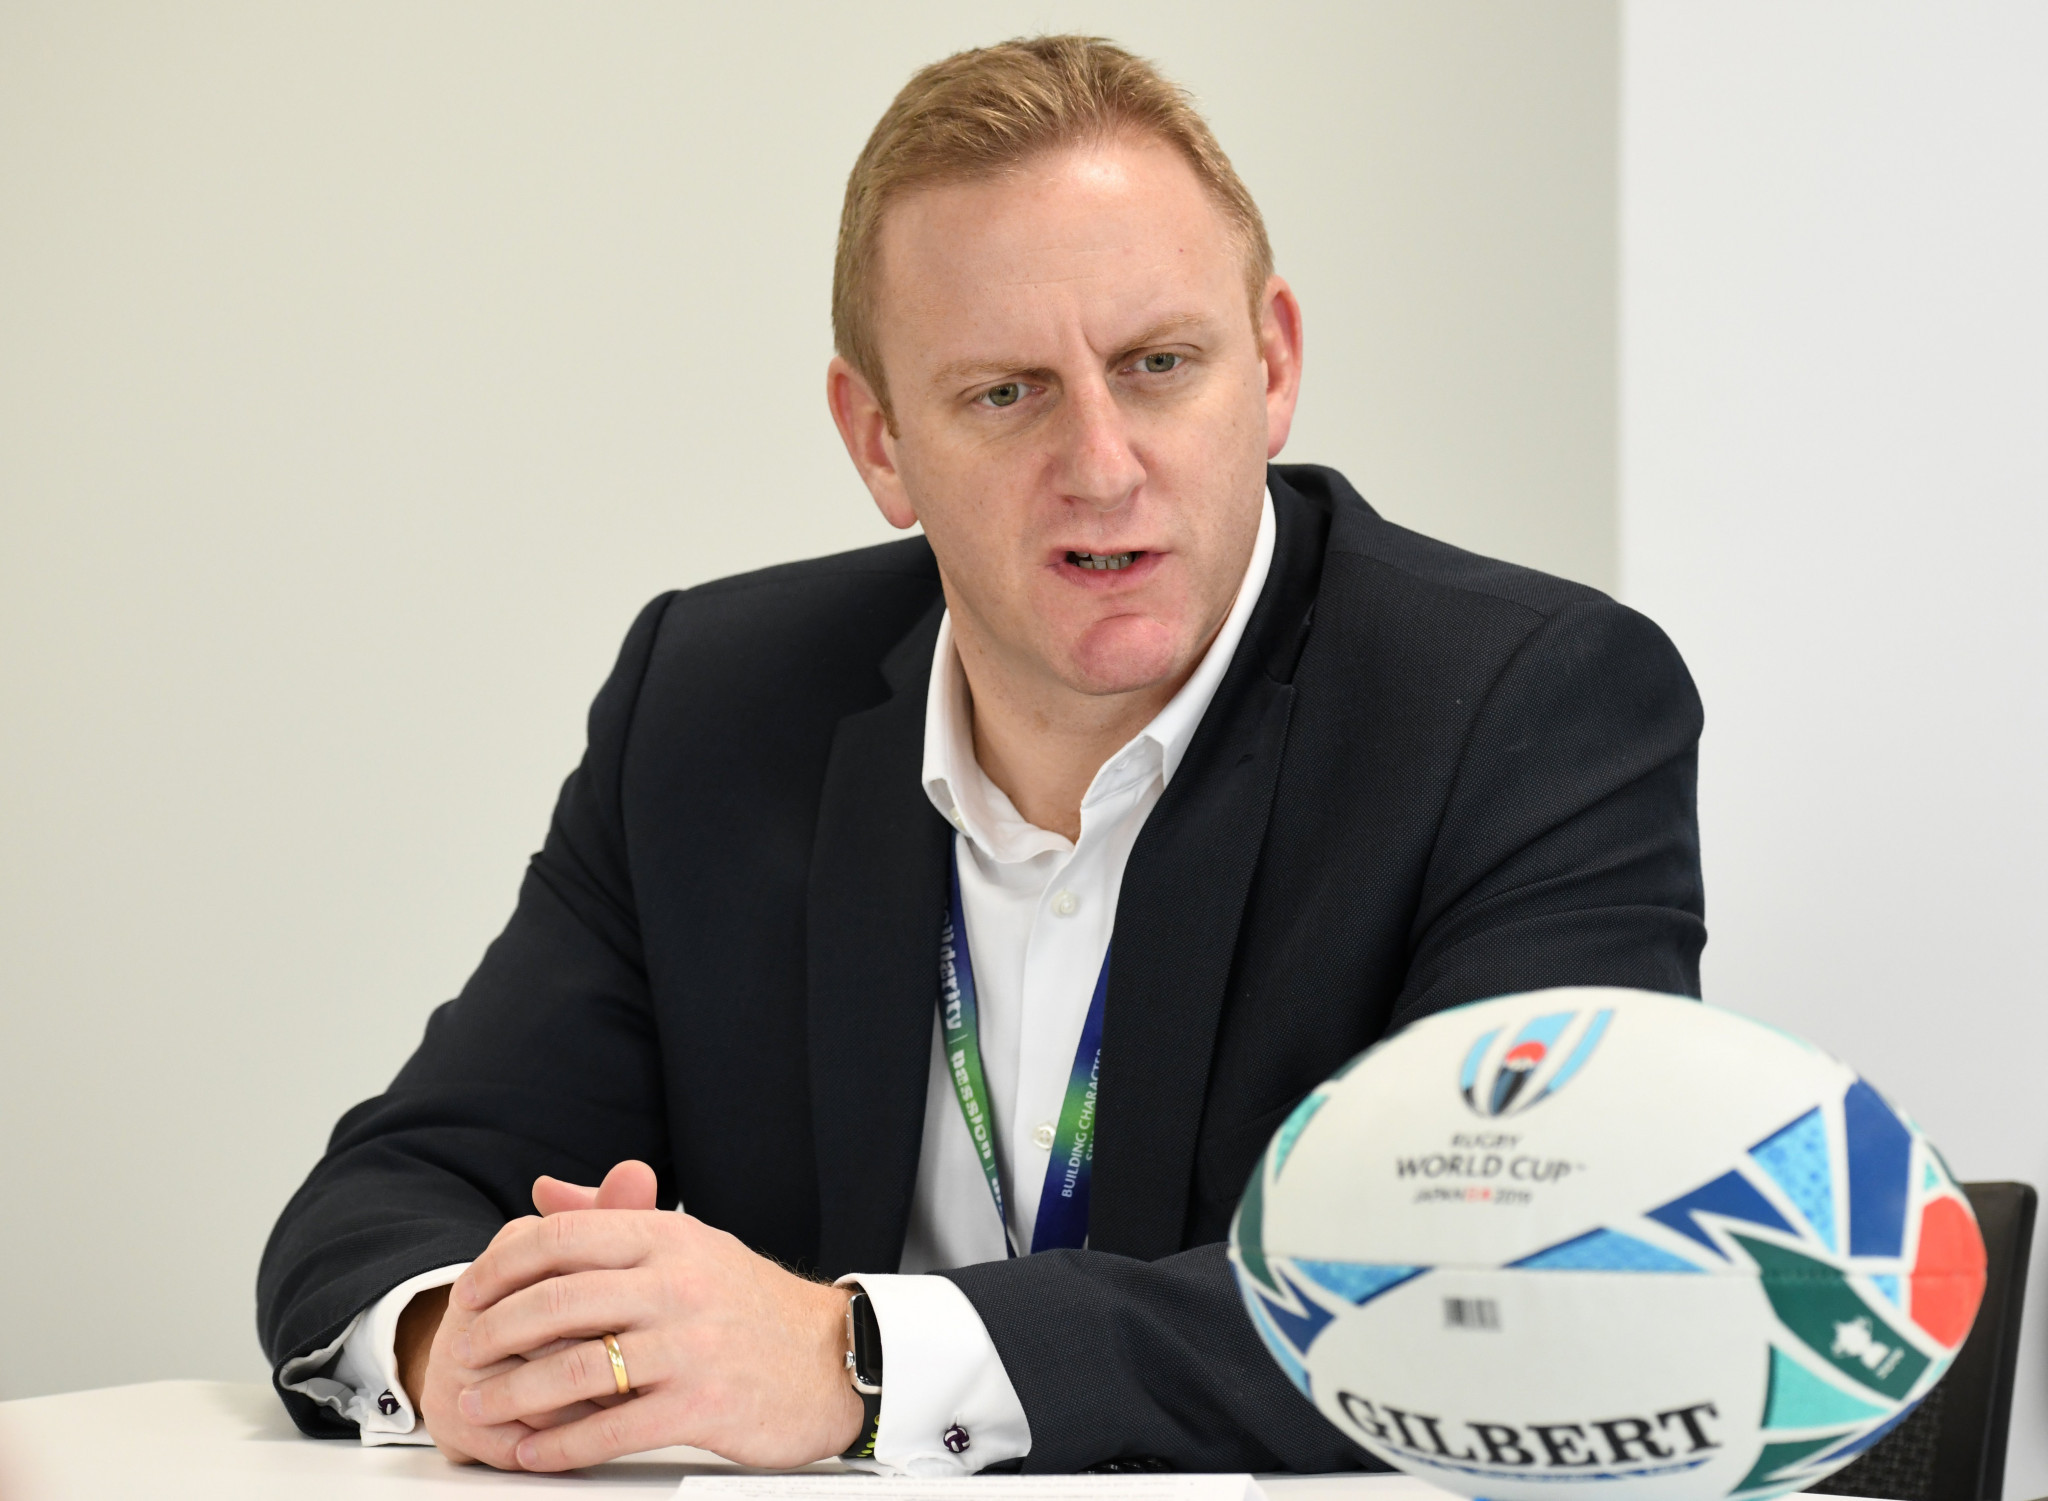 Alan Gilpin had served as World Rugby chief operating officer and managing director of Rugby World Cup since 2016 ©Getty Images